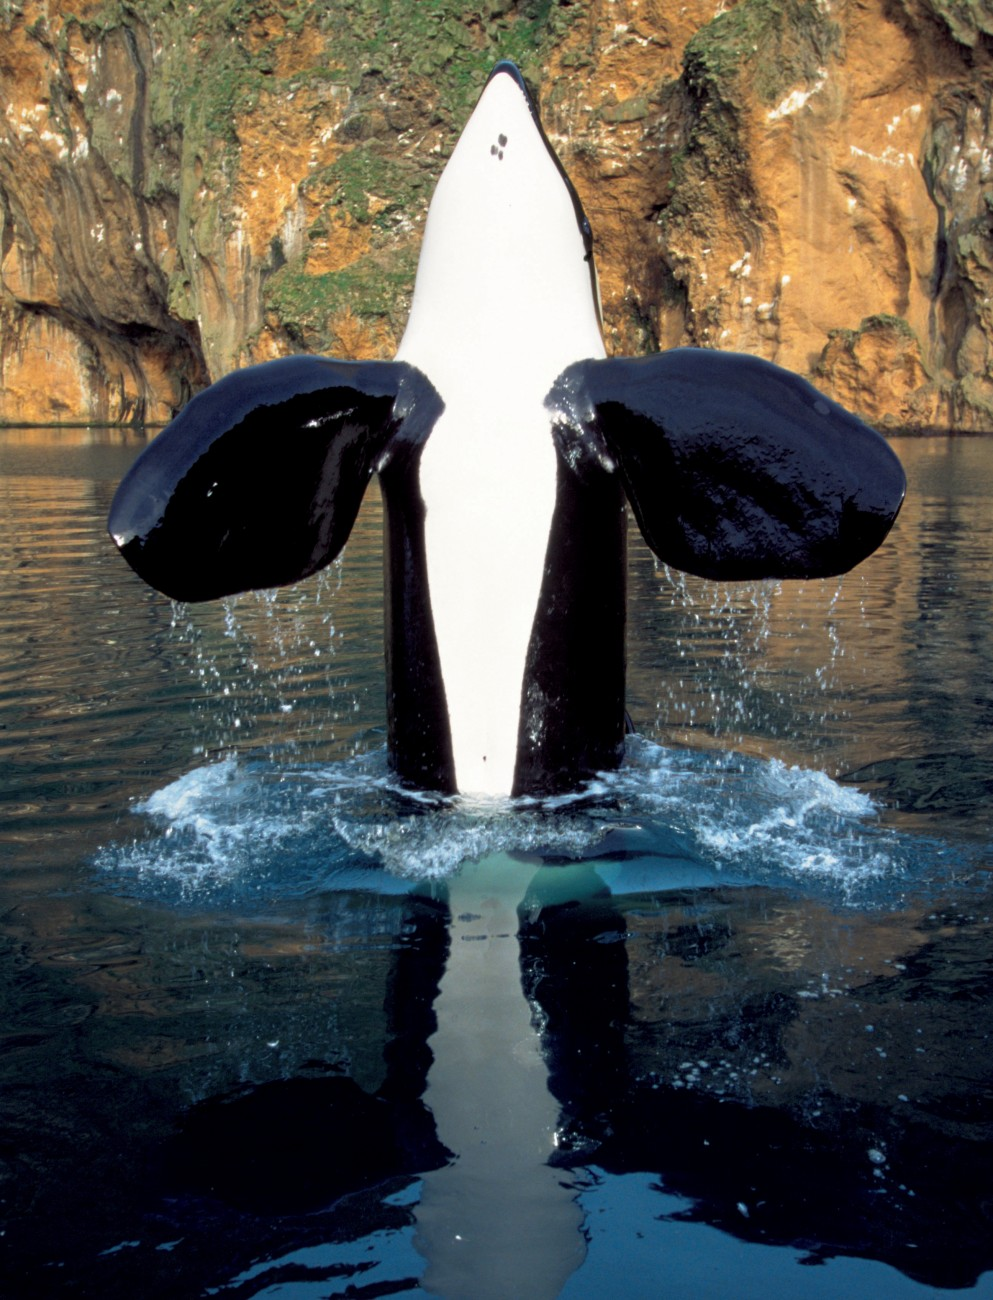 Although the release of Keiko, the star of the movie Free Willy was not a total success, the information gained from the attempt may help the rehabilitation of other captive orca released back into the wild. Here Keiko is spyhopping in Iceland, showing the extremely large pectoral fins adult male orca possess.